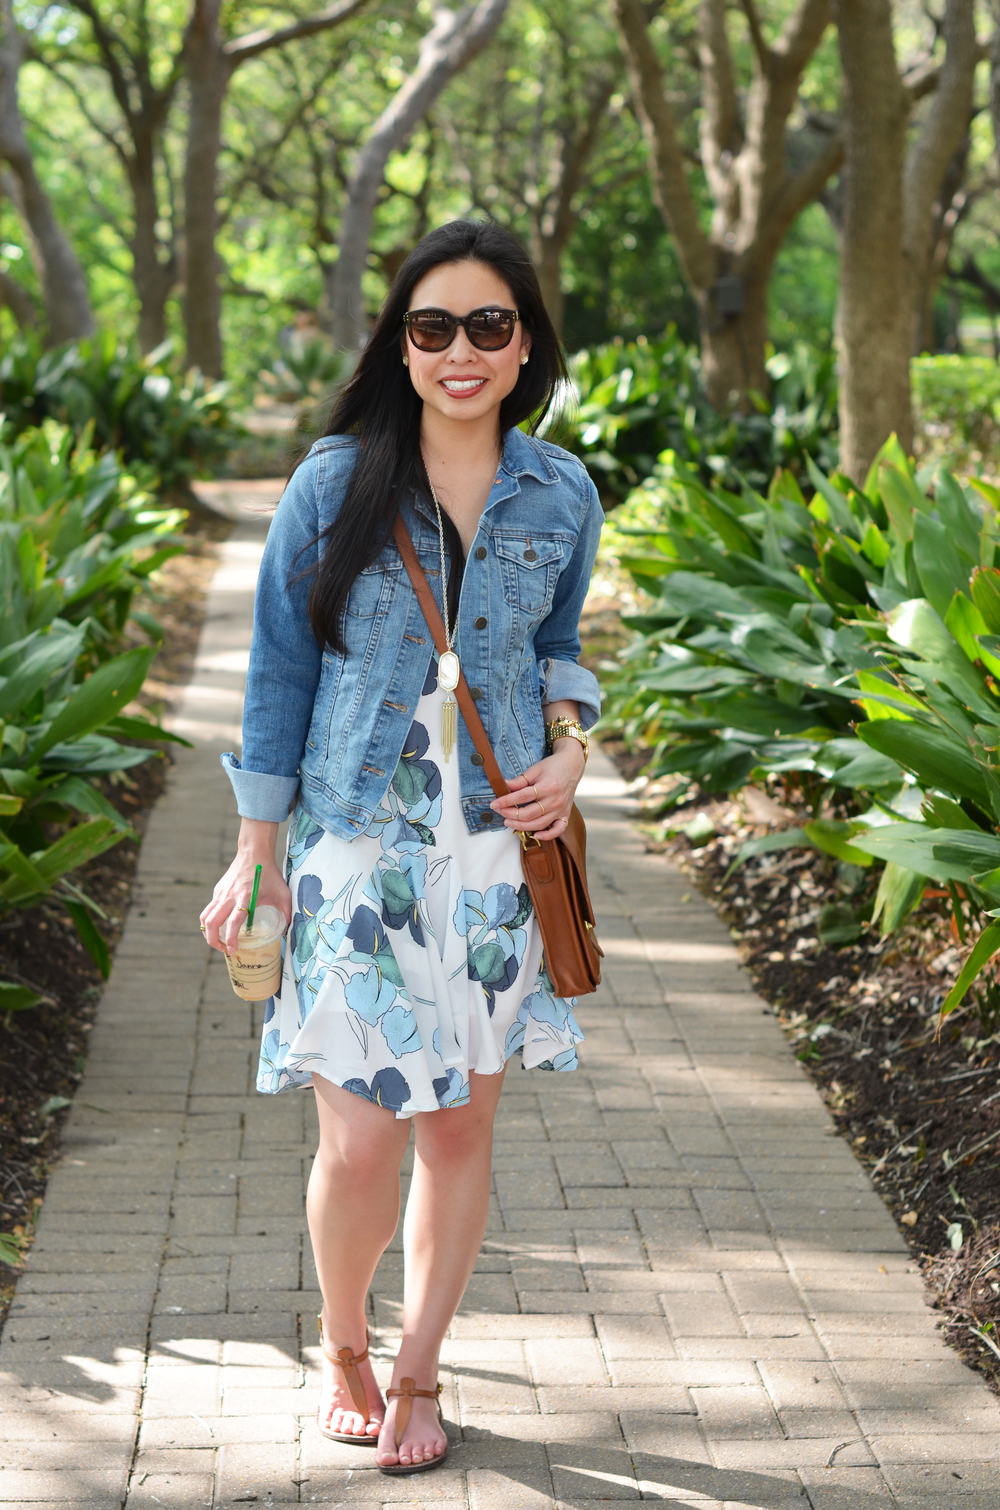 the floral ruffled dress & denim jacket — janna doan